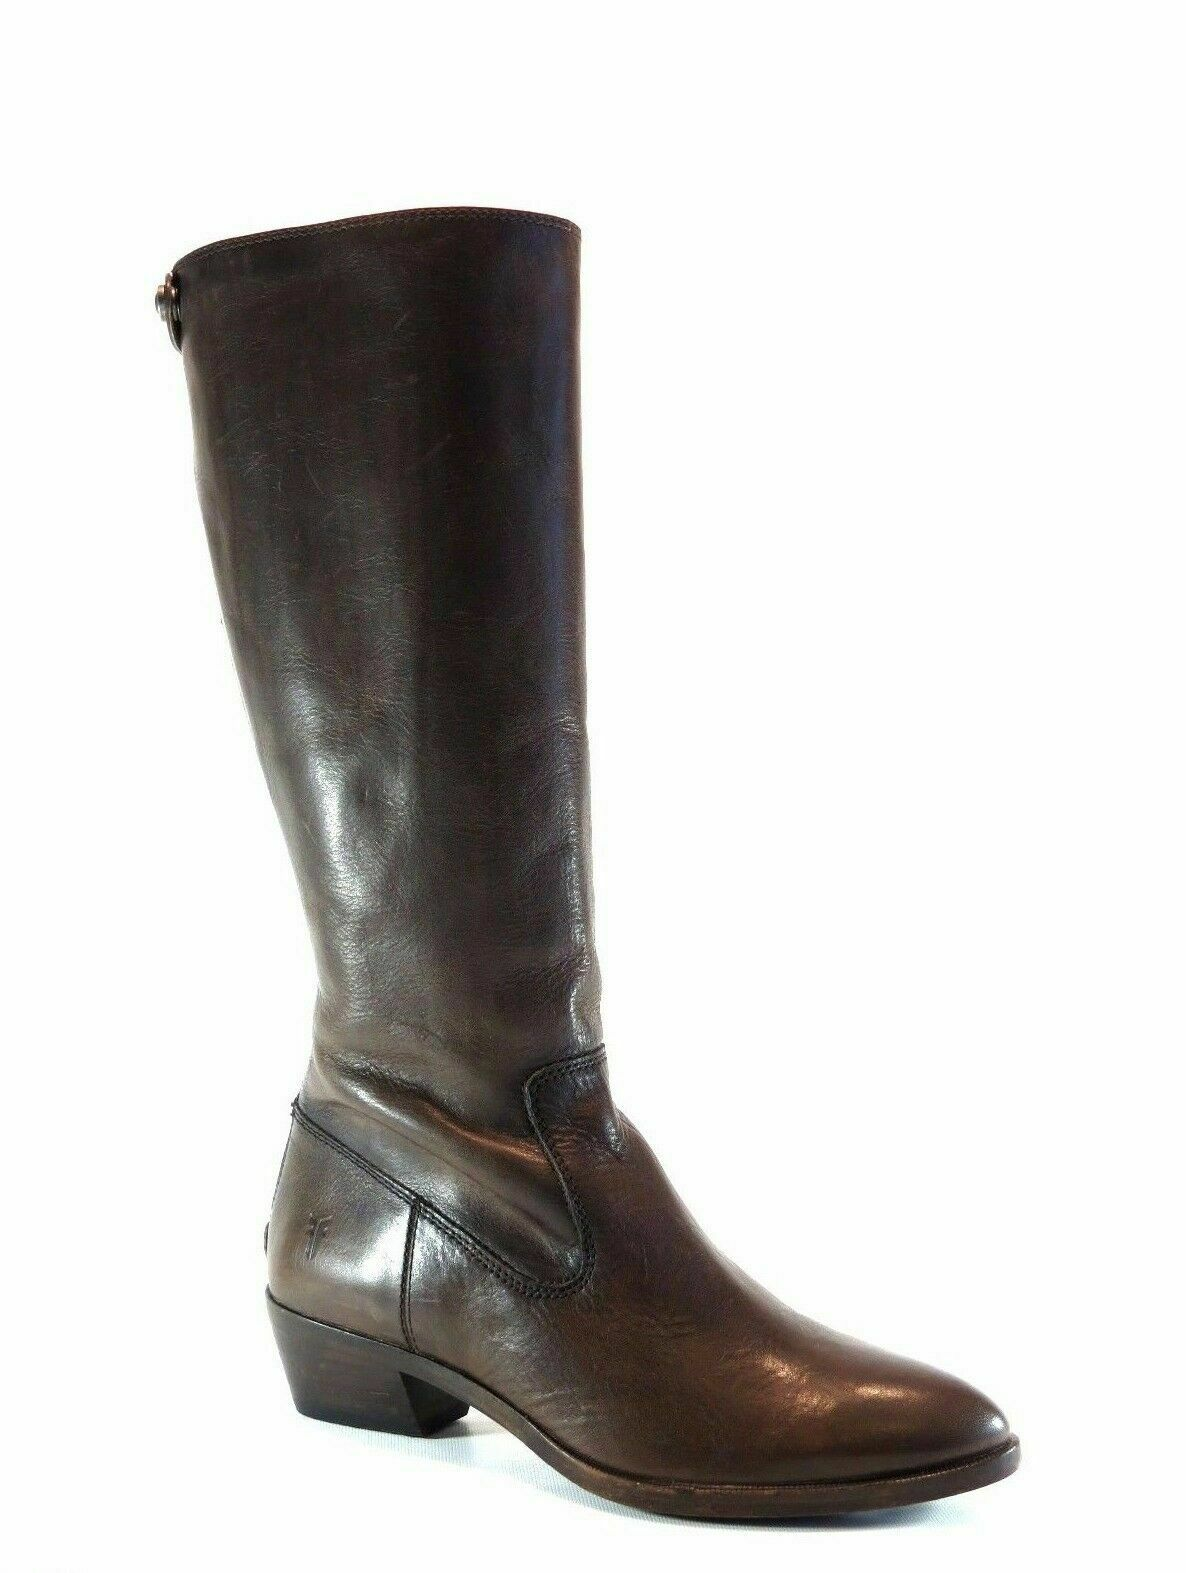 Frye Women's Women's Women's Ruby Zip Tall Boot Charcoal Brown Leather Knee High Riding Size 6 07da58